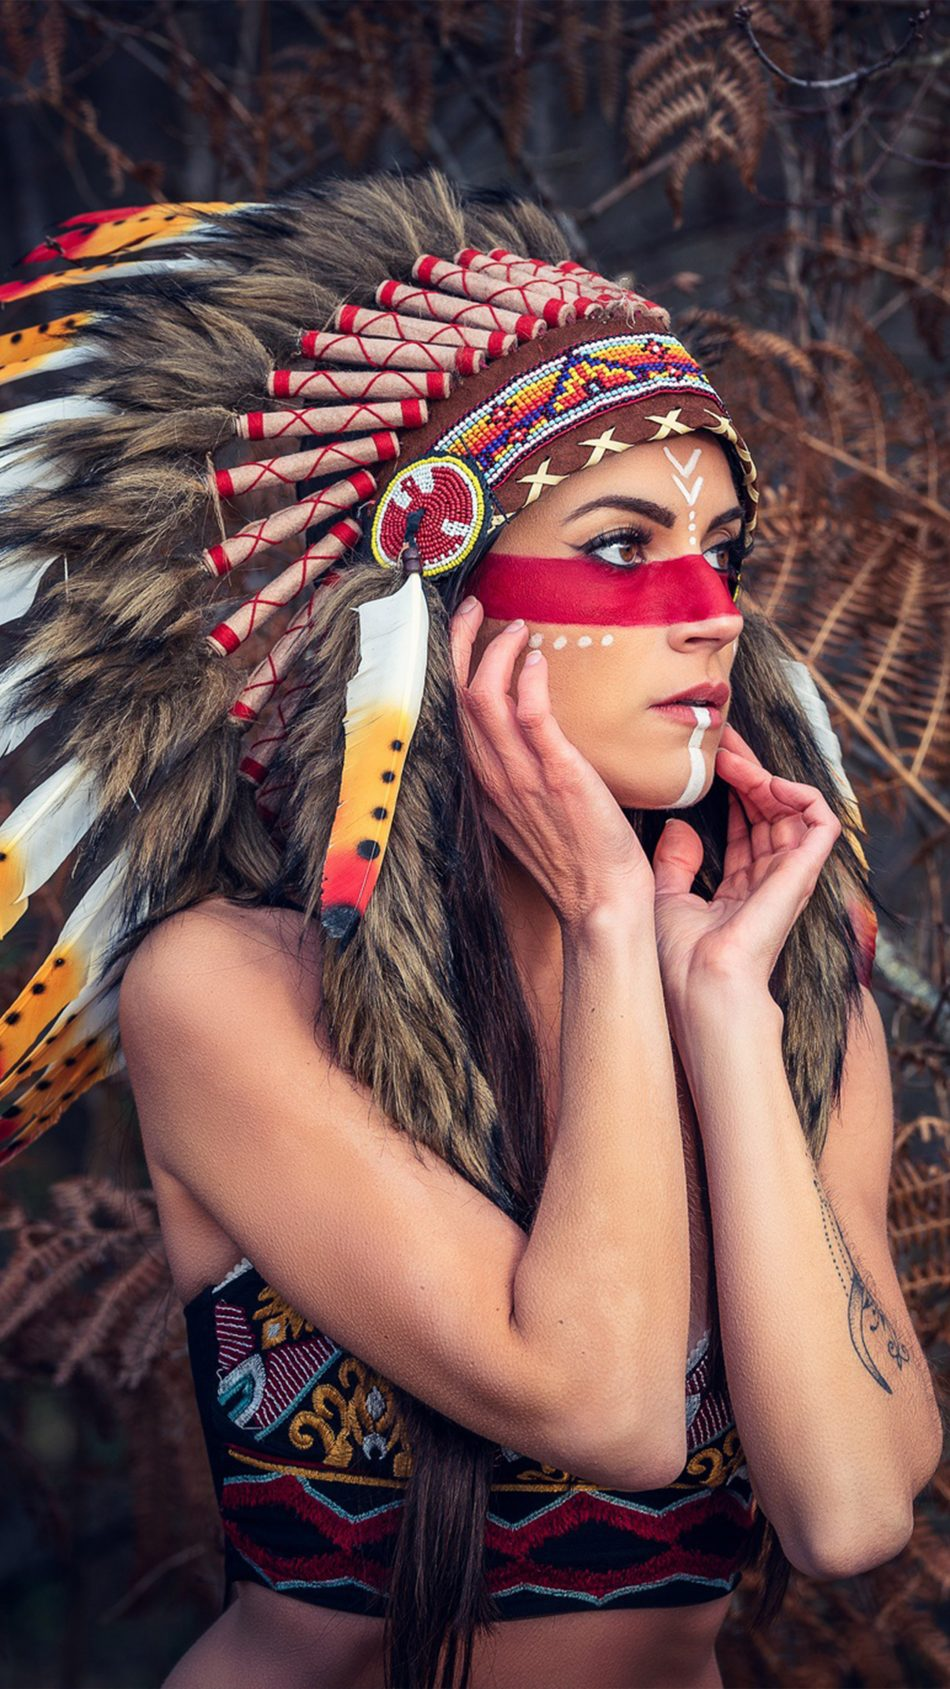 Girl Headdress Native American 4K Ultra HD Mobile Wallpaper